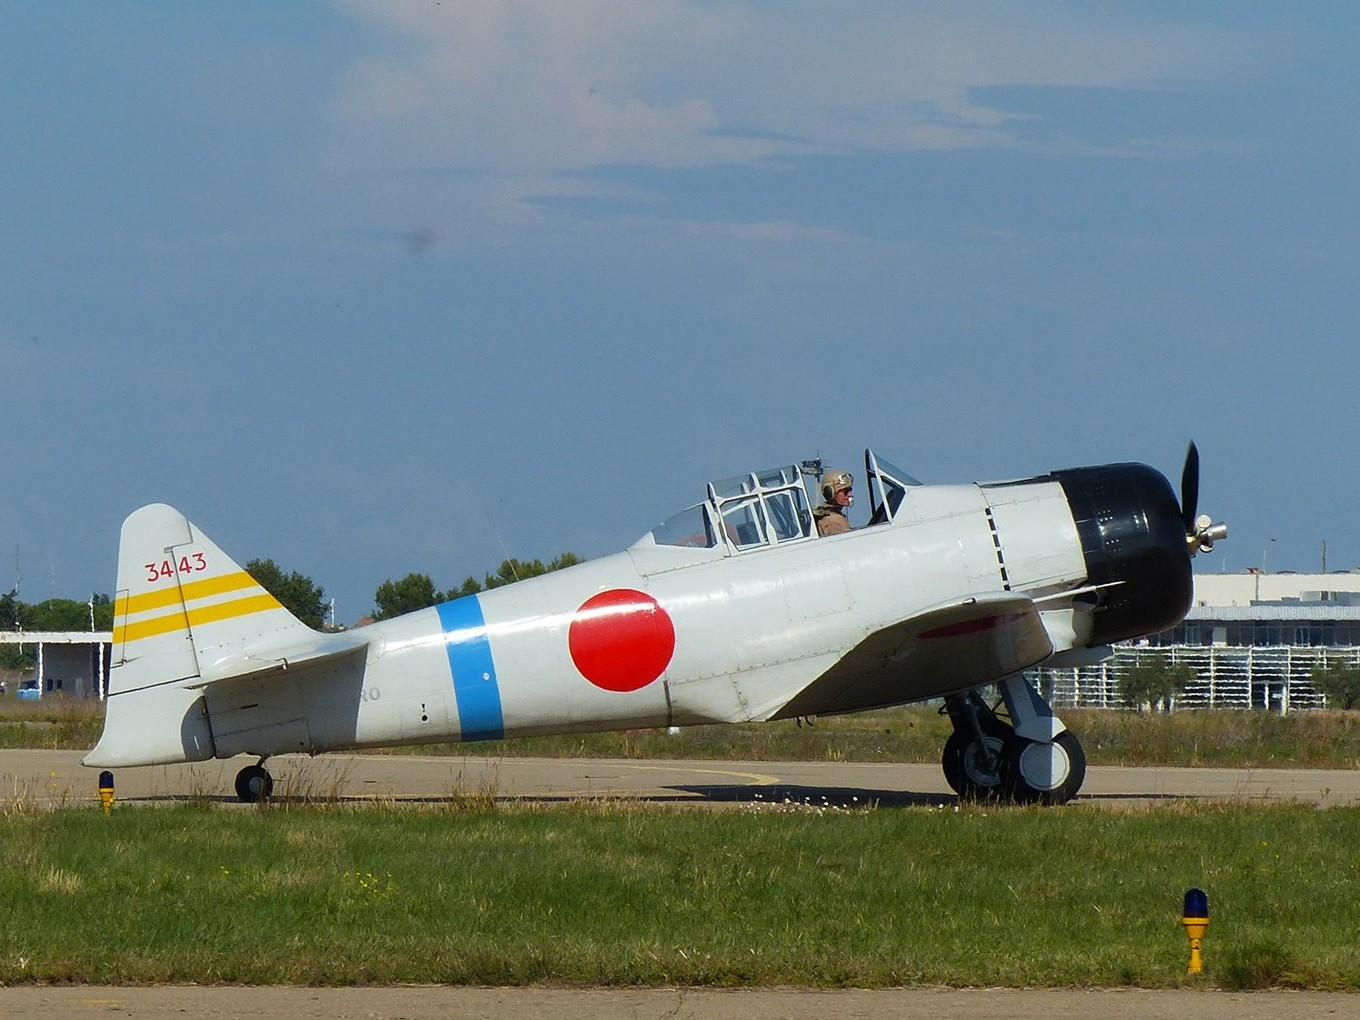 Fly Nimes Photo Report Nîmes Airshow World Warbird News